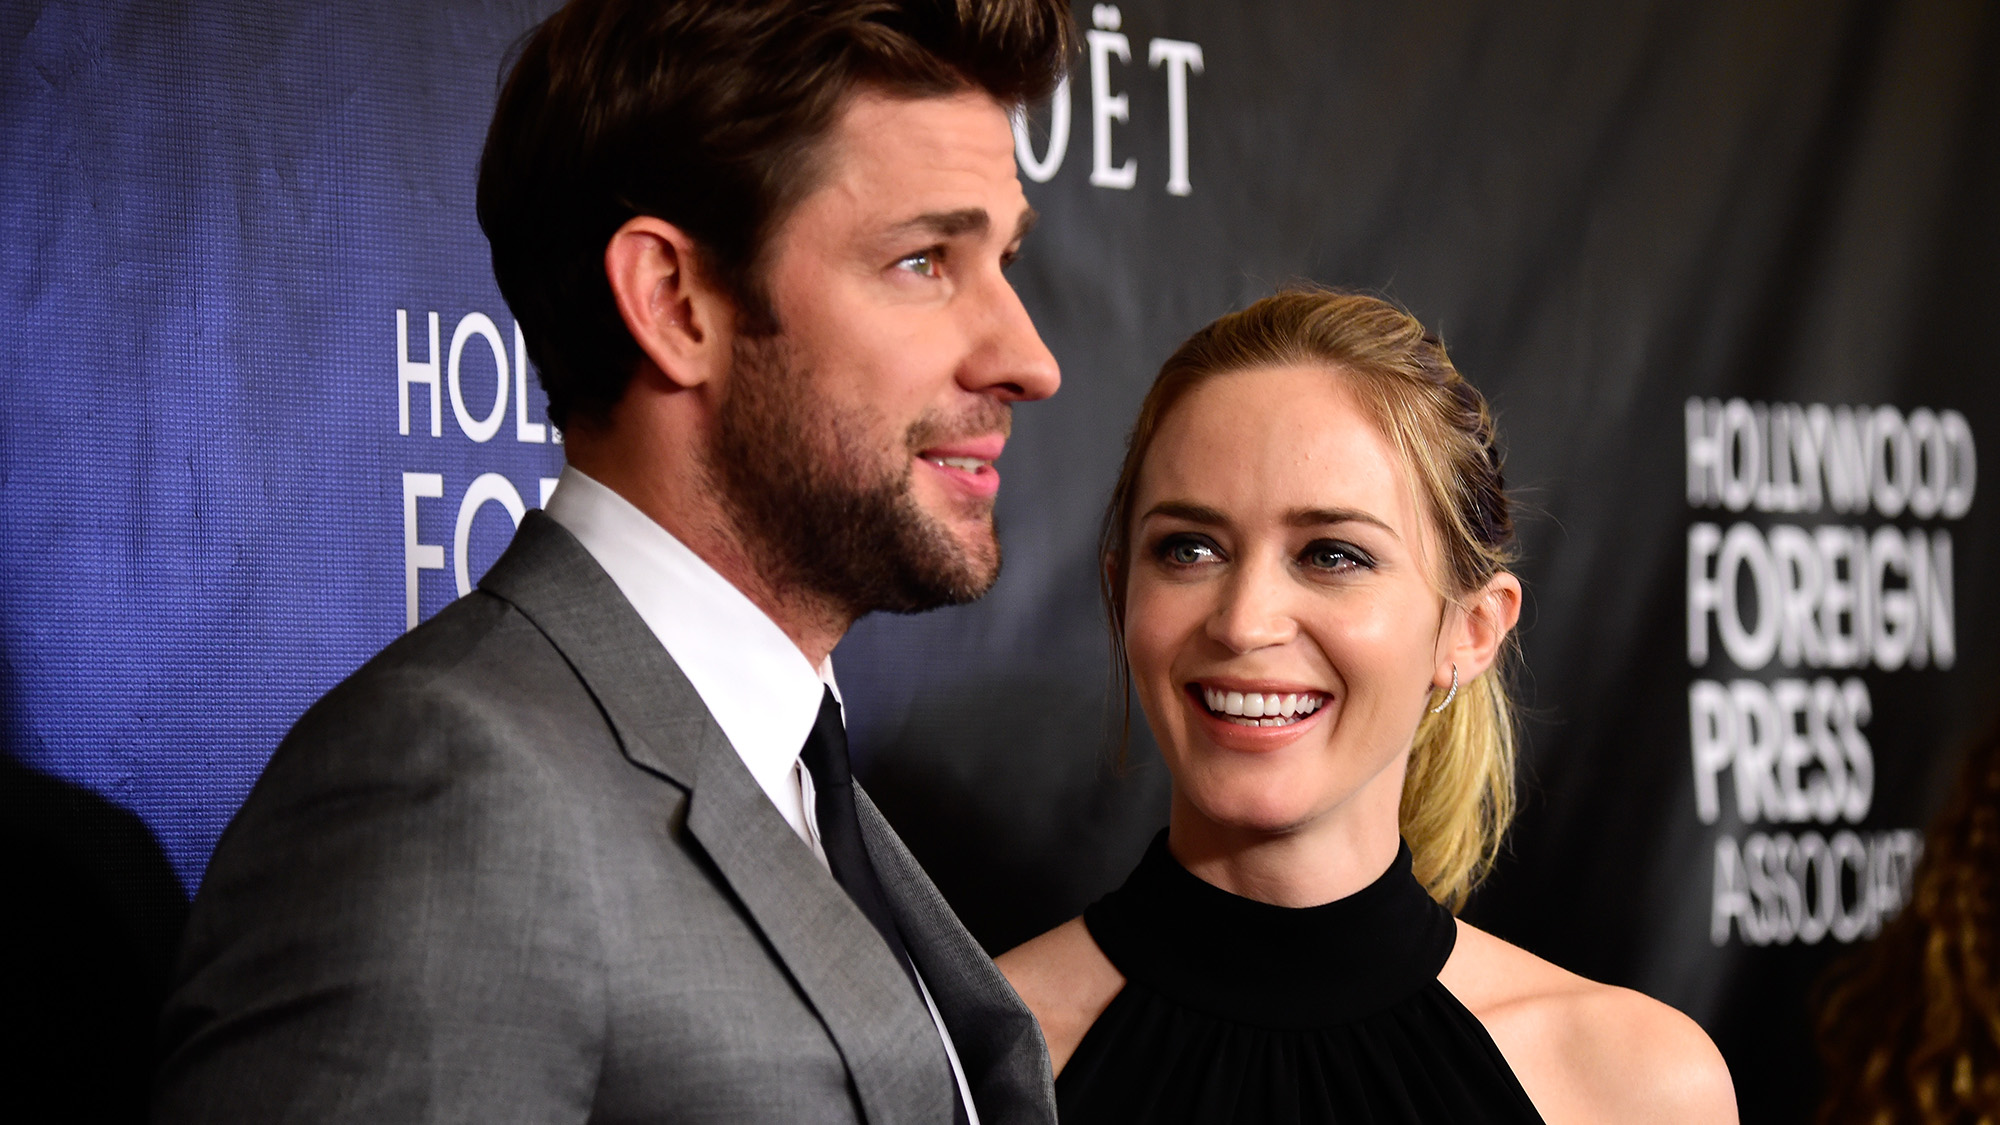 emily blunt amp john krasinski team for a quiet place 1